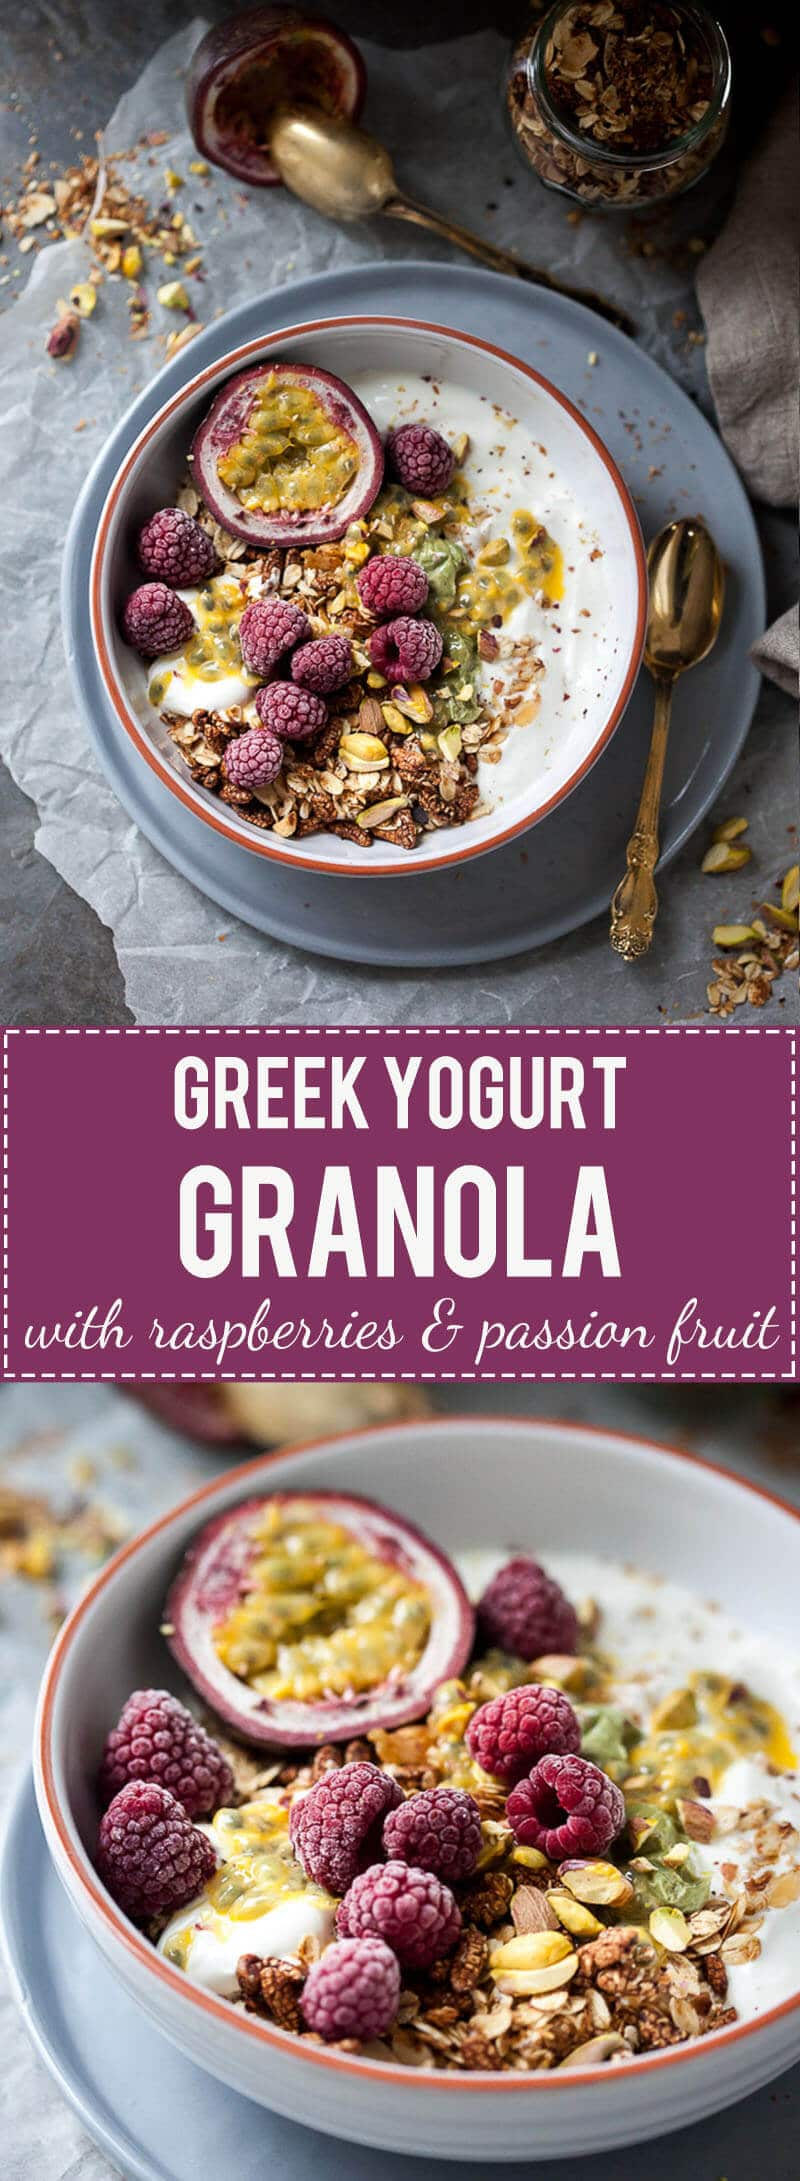 This Raspberry & Passion Fruit Greek Yogurt Granola is simply divine, plus it's fast & easy to make. Perfect breakfast choice!